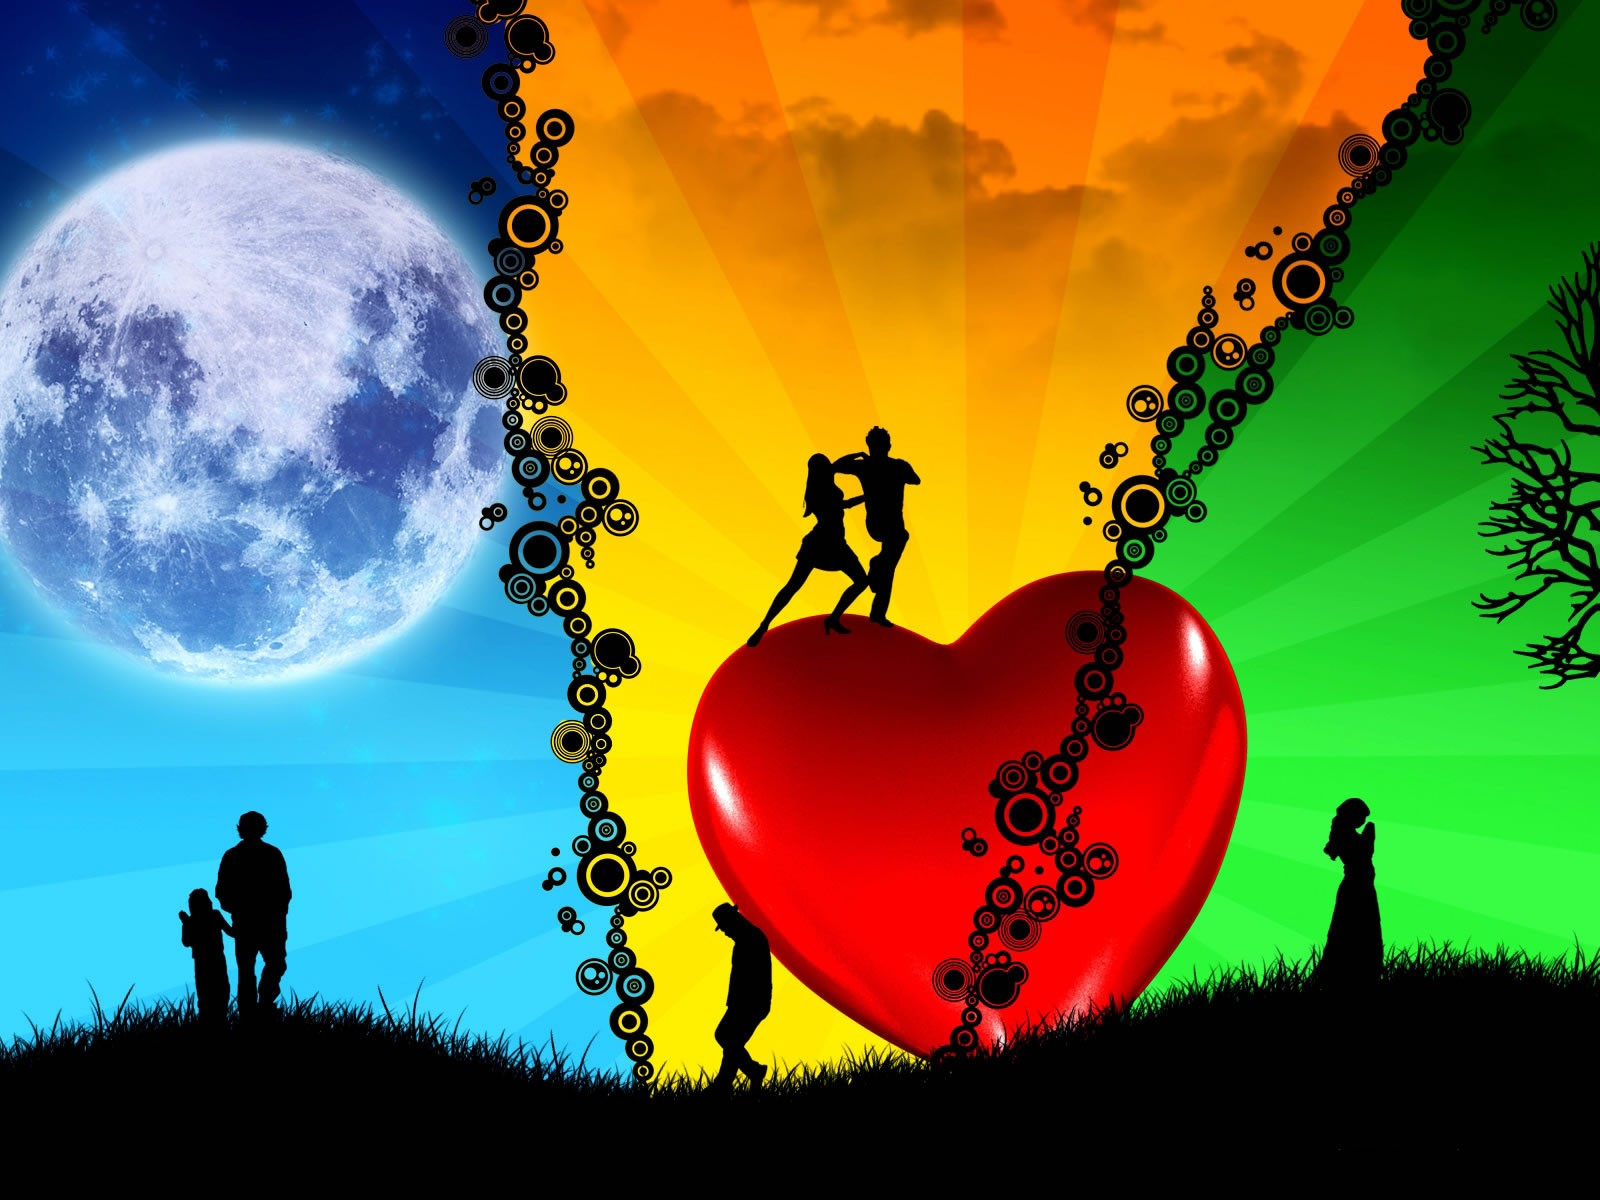 Lover Wallpaper Photo : Awesome Wallpapers Of Love